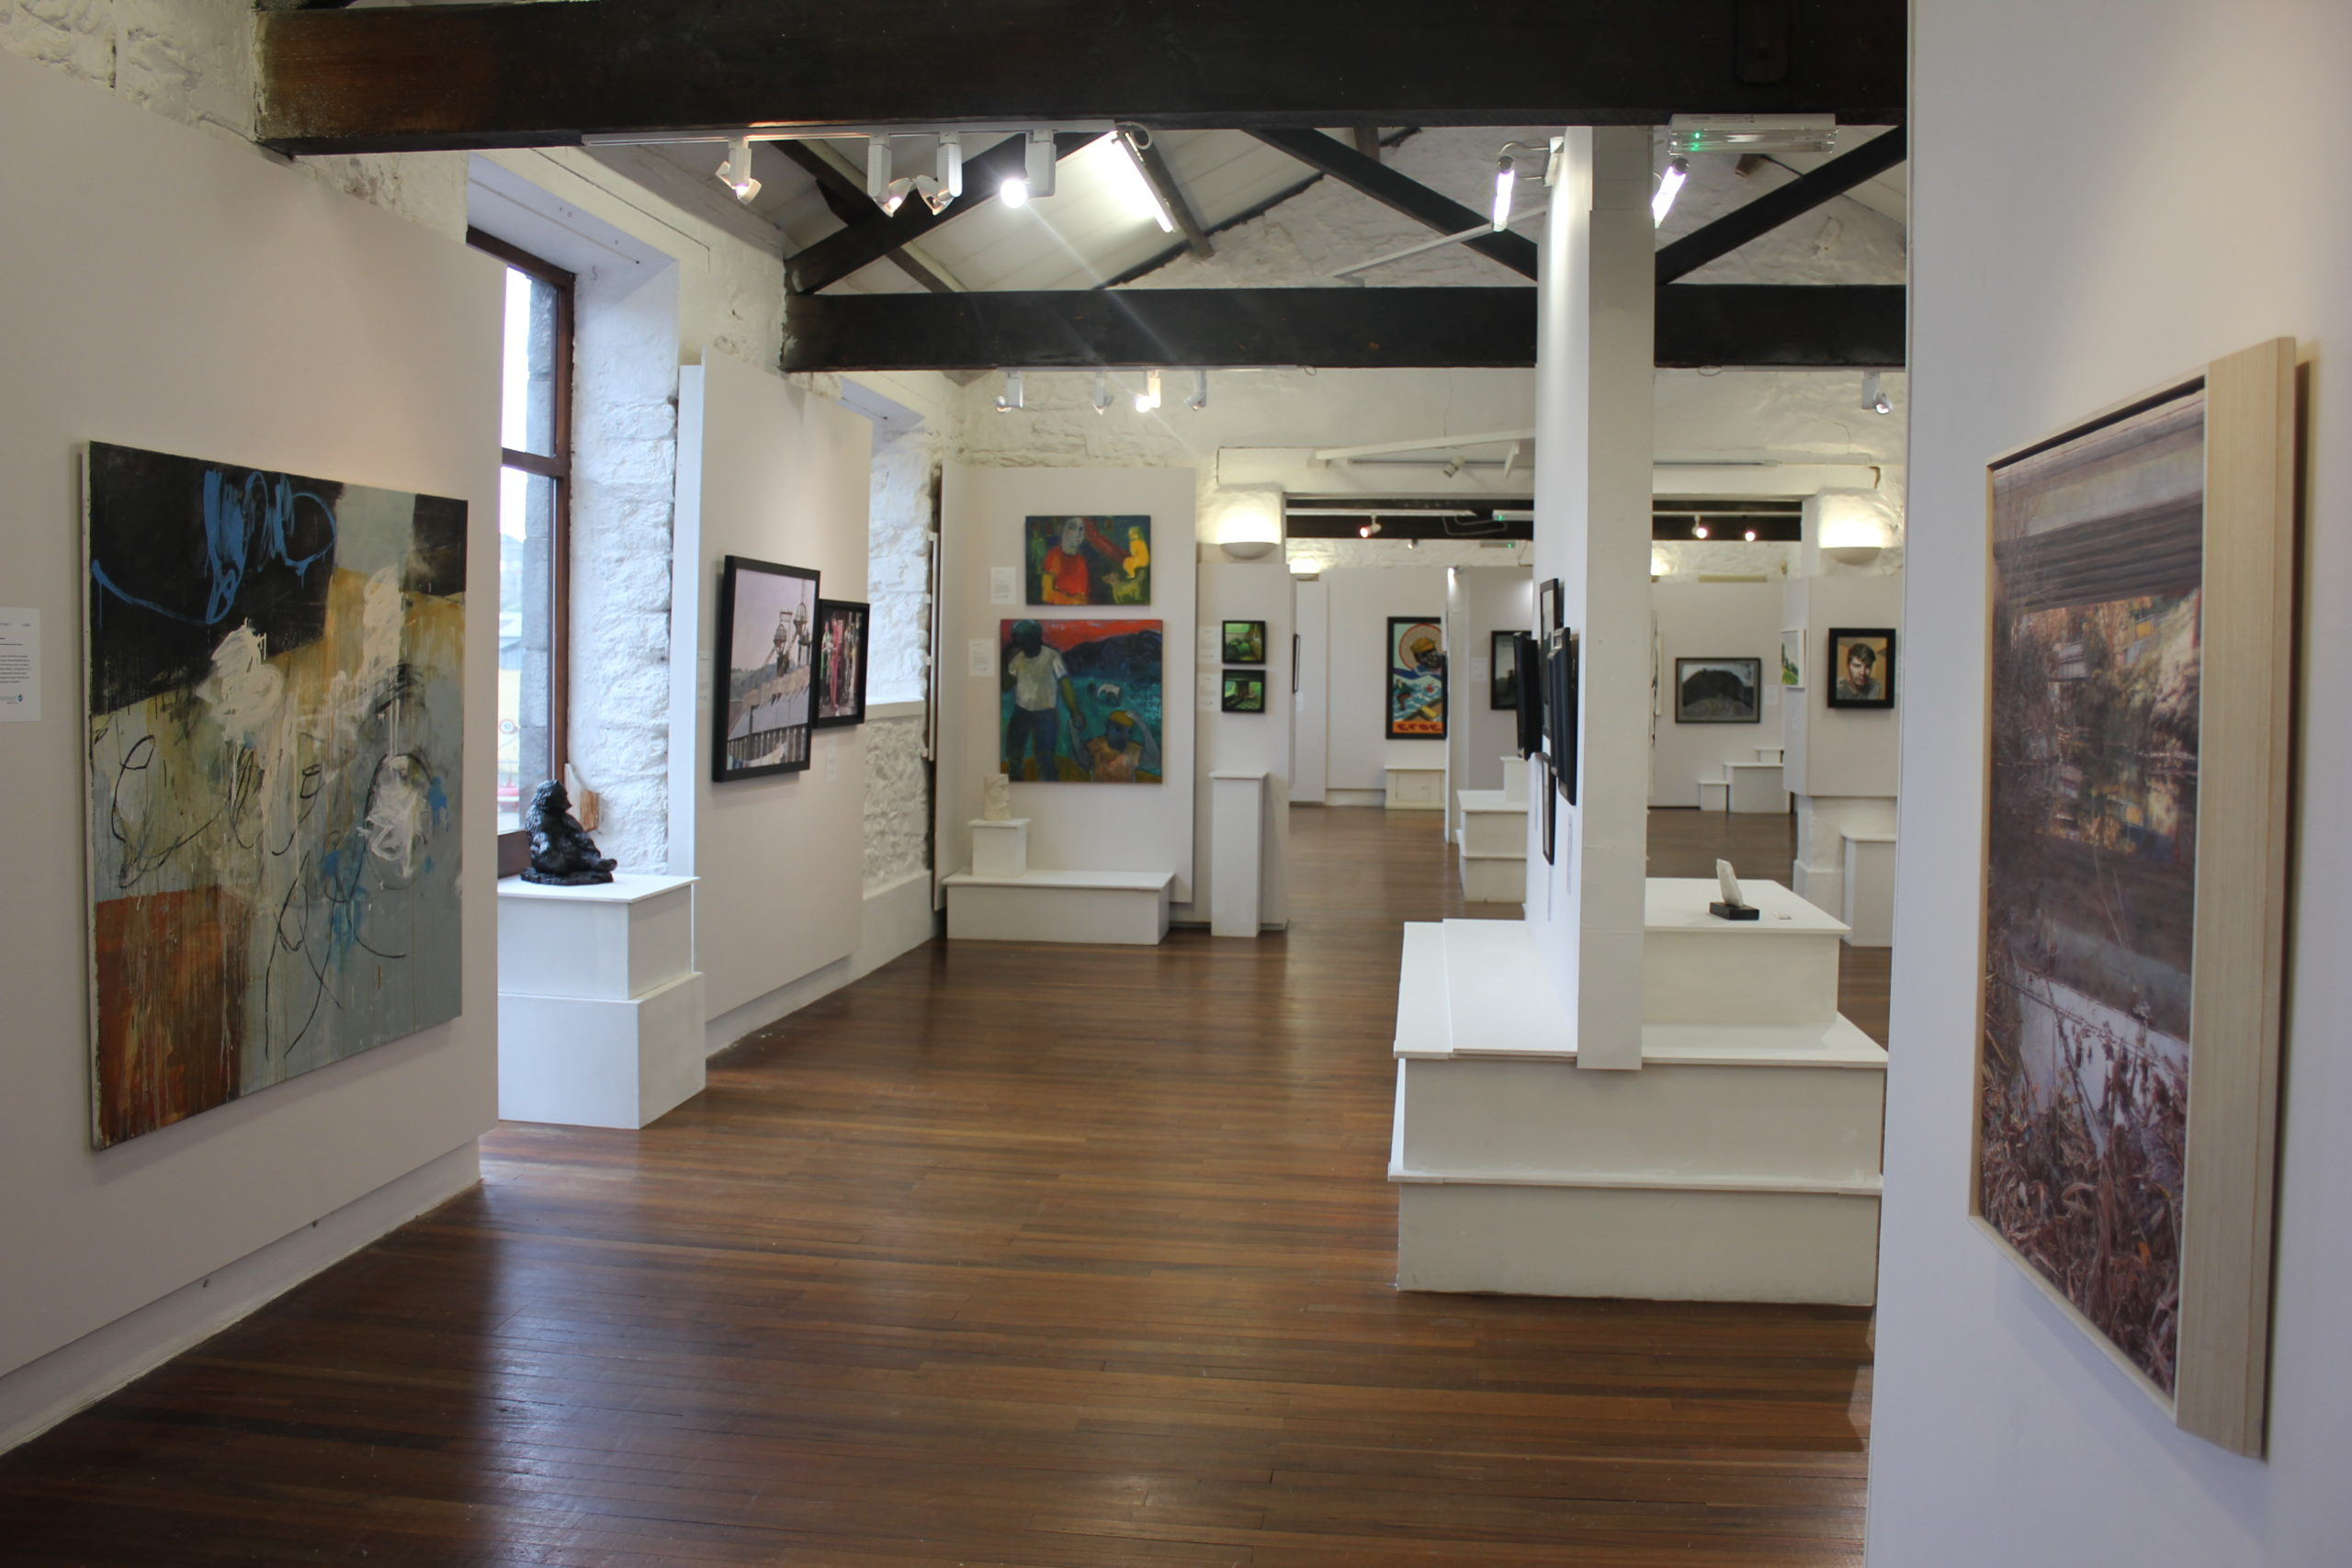 Gallery Space with Exhibition